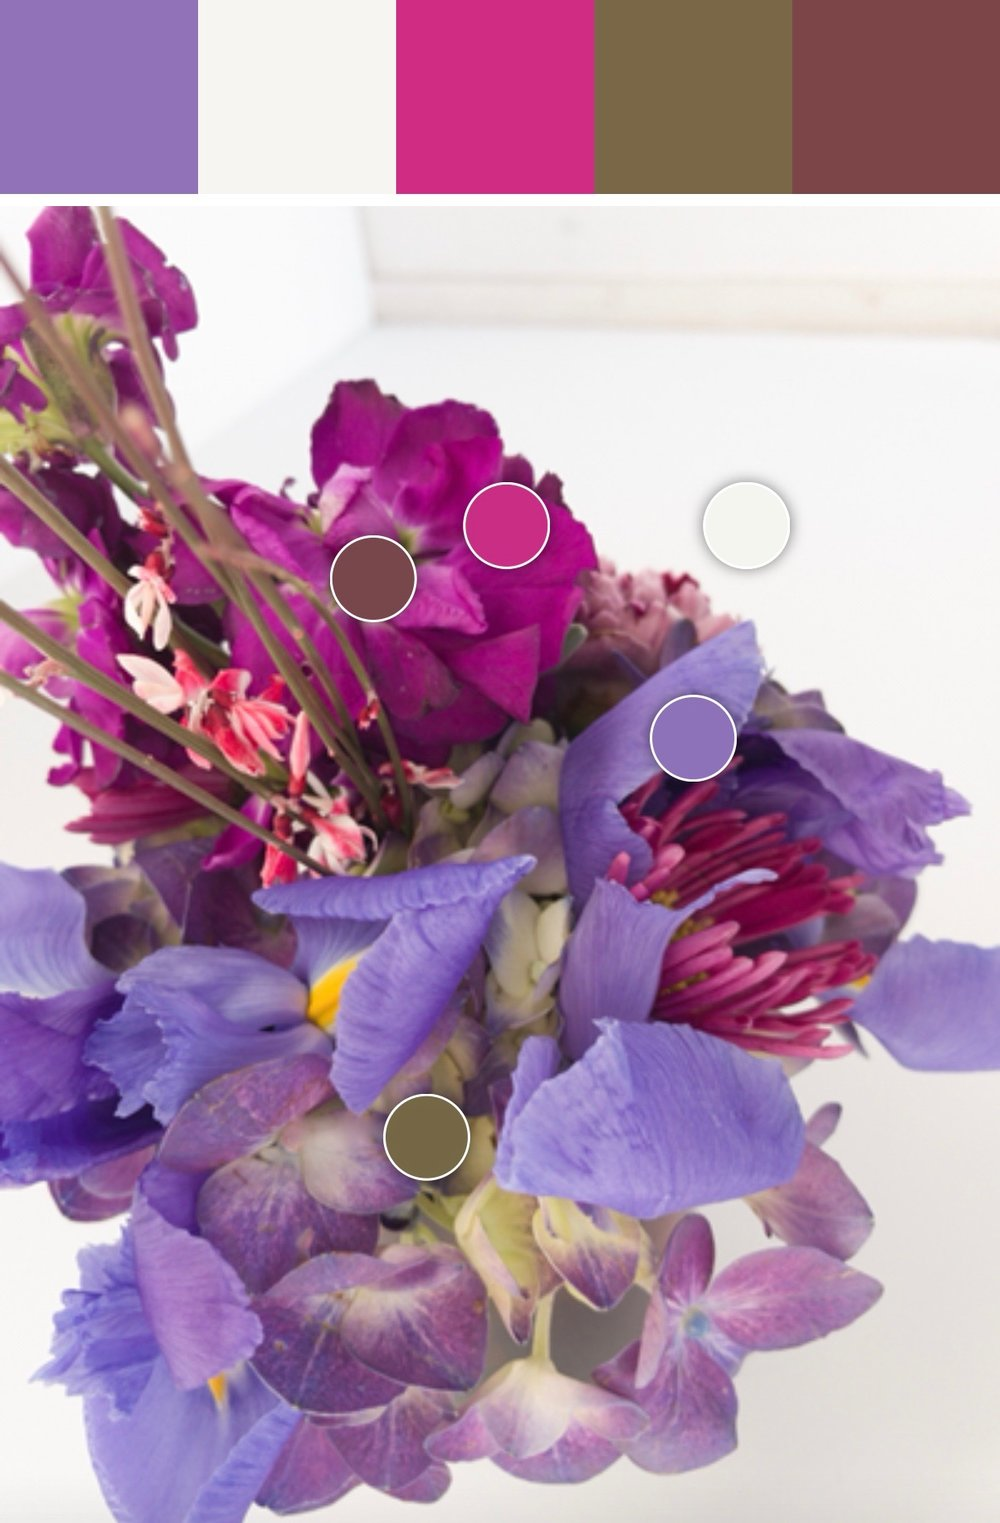 Petalfox Ultra Violet Floral Collection